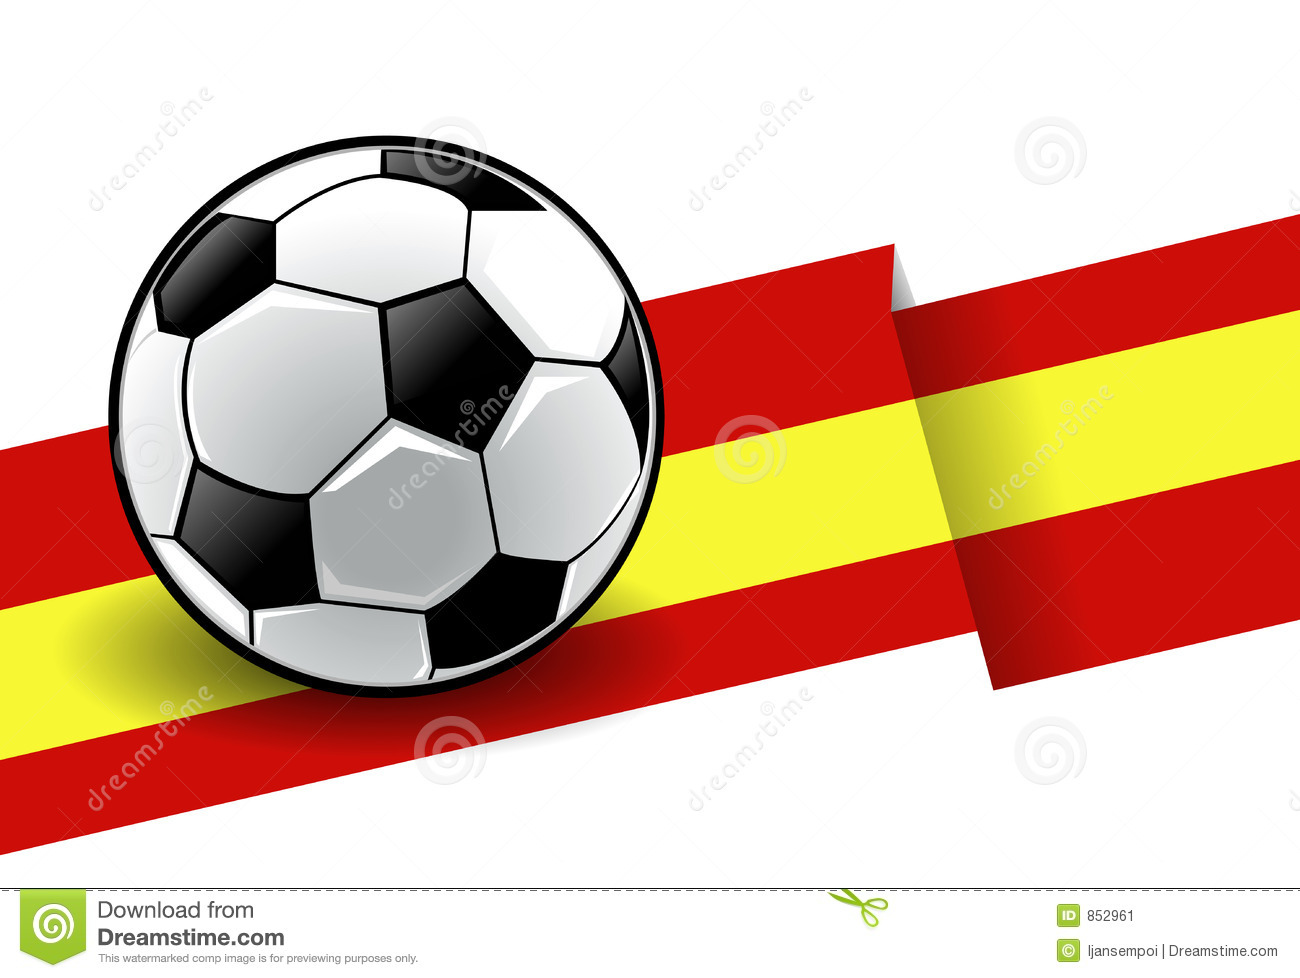 hight resolution of 1300x978 flag football clipart